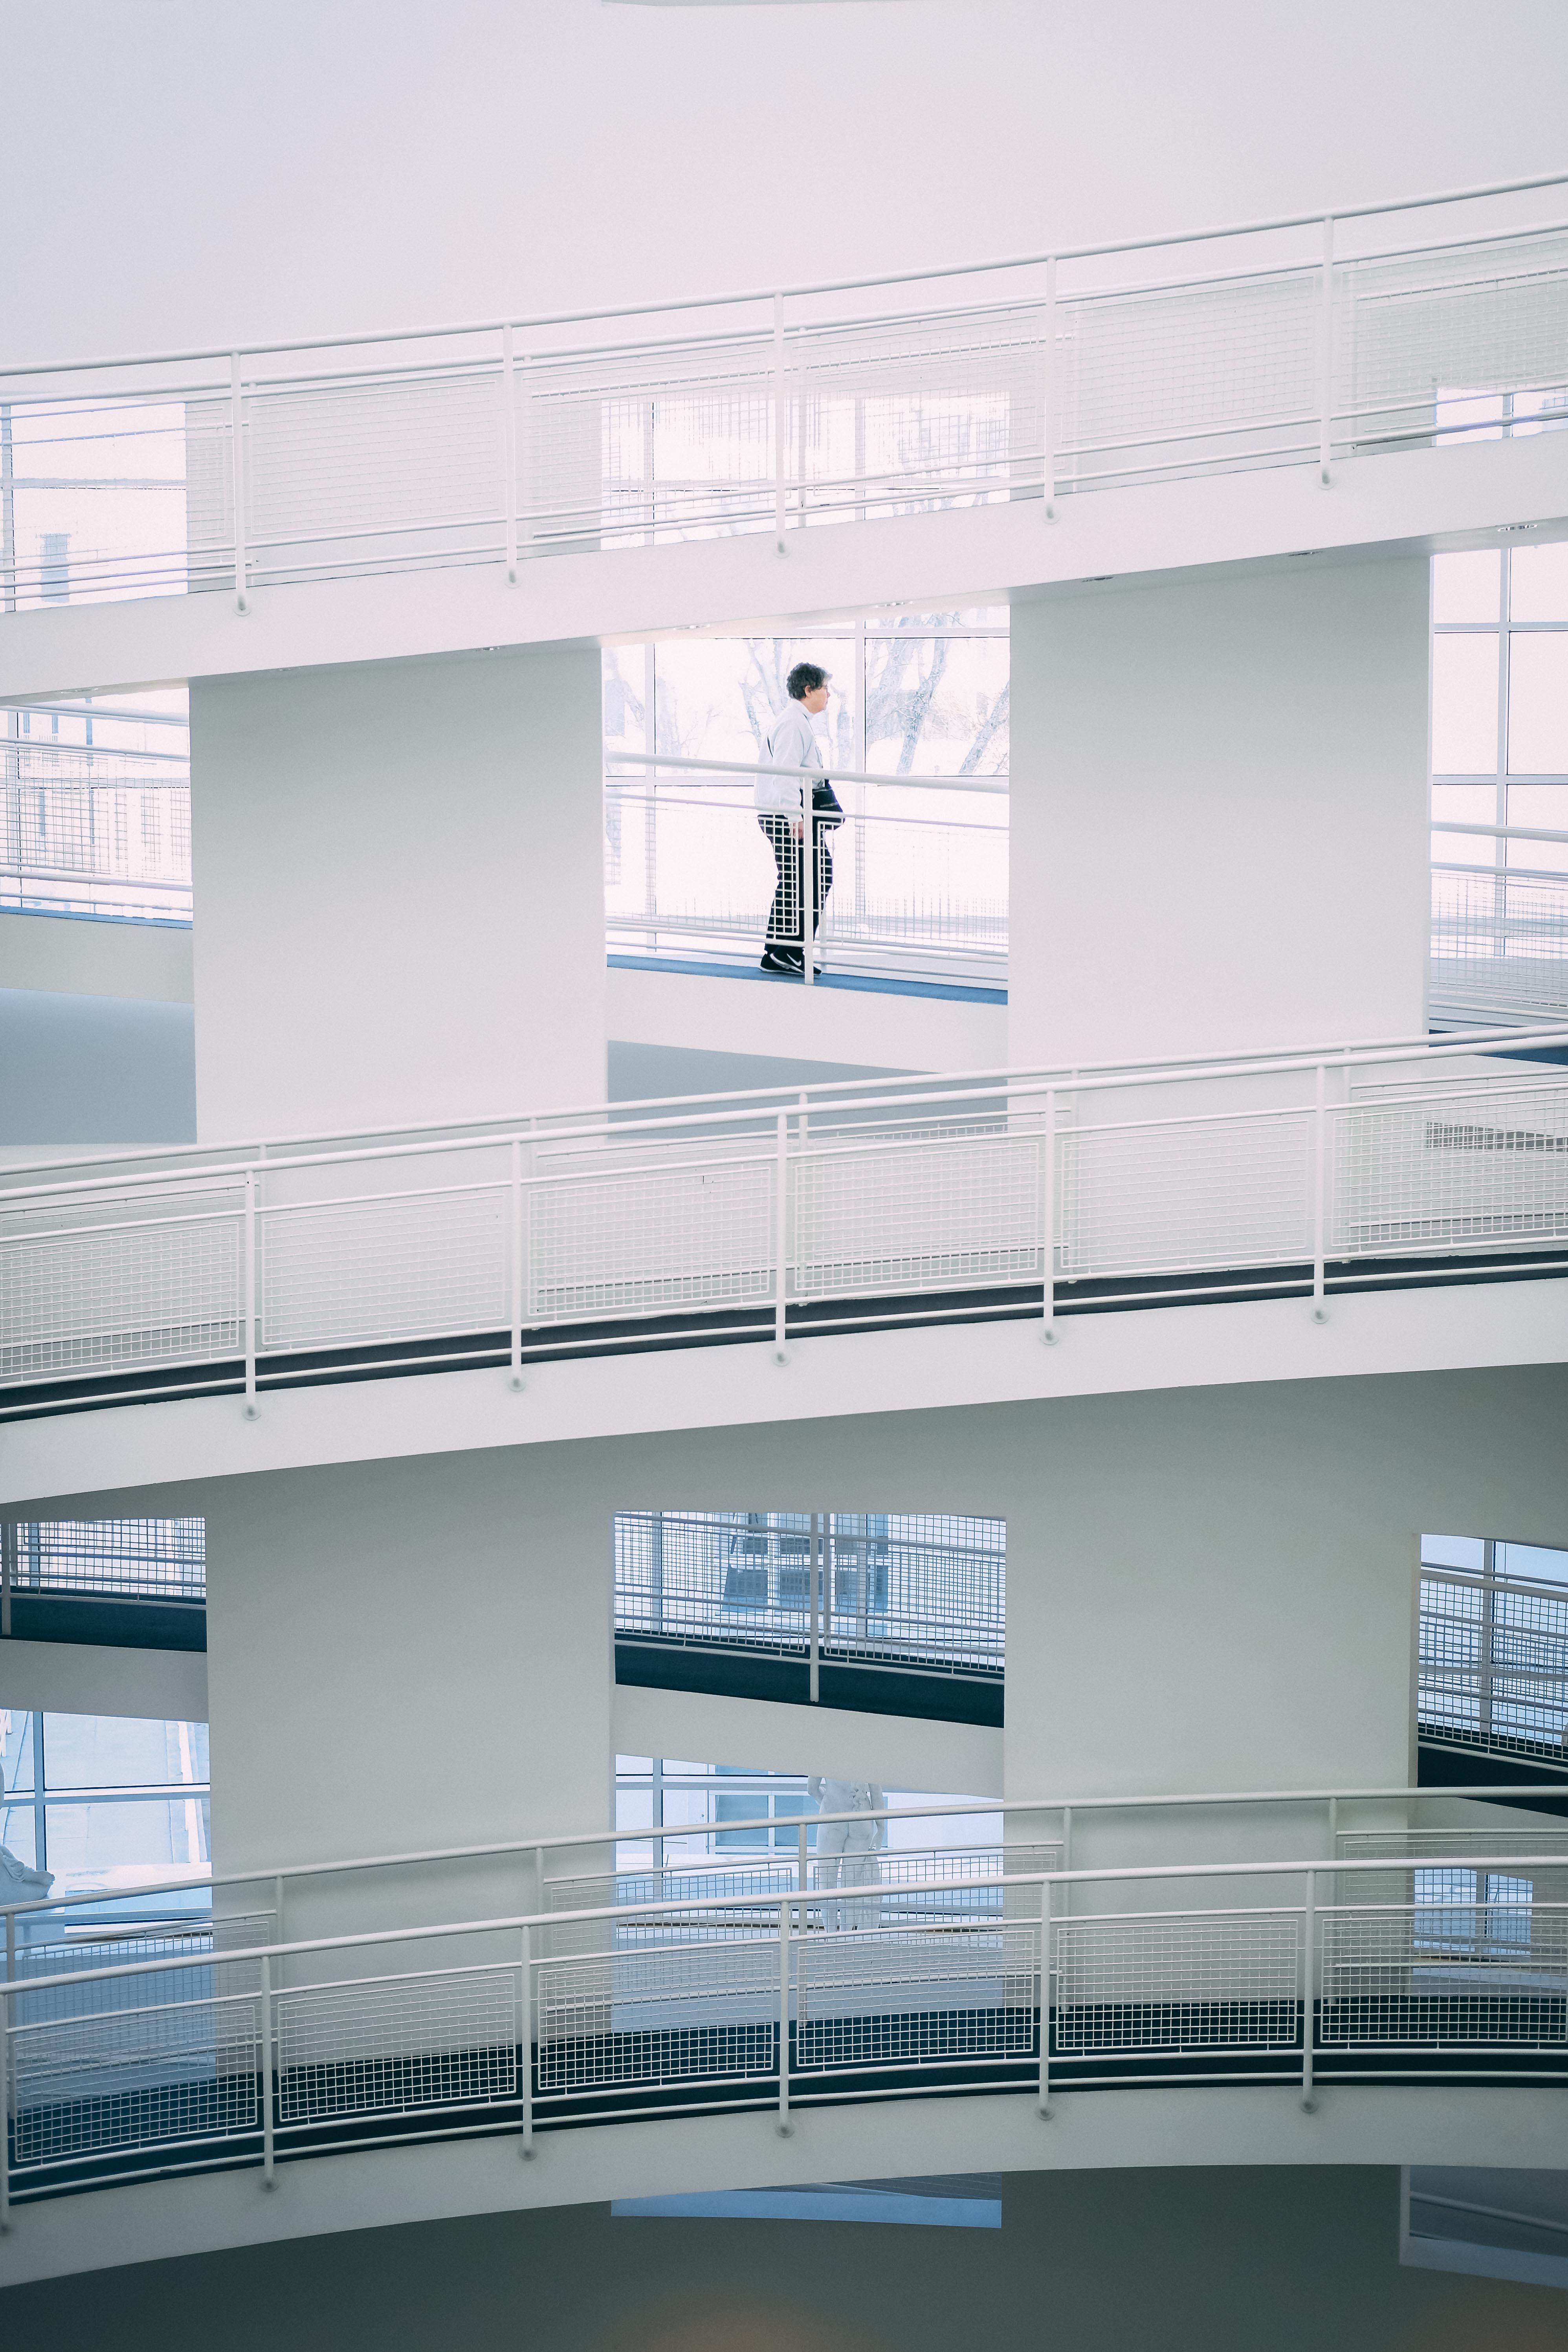 person walking on stairs inside building during daytime